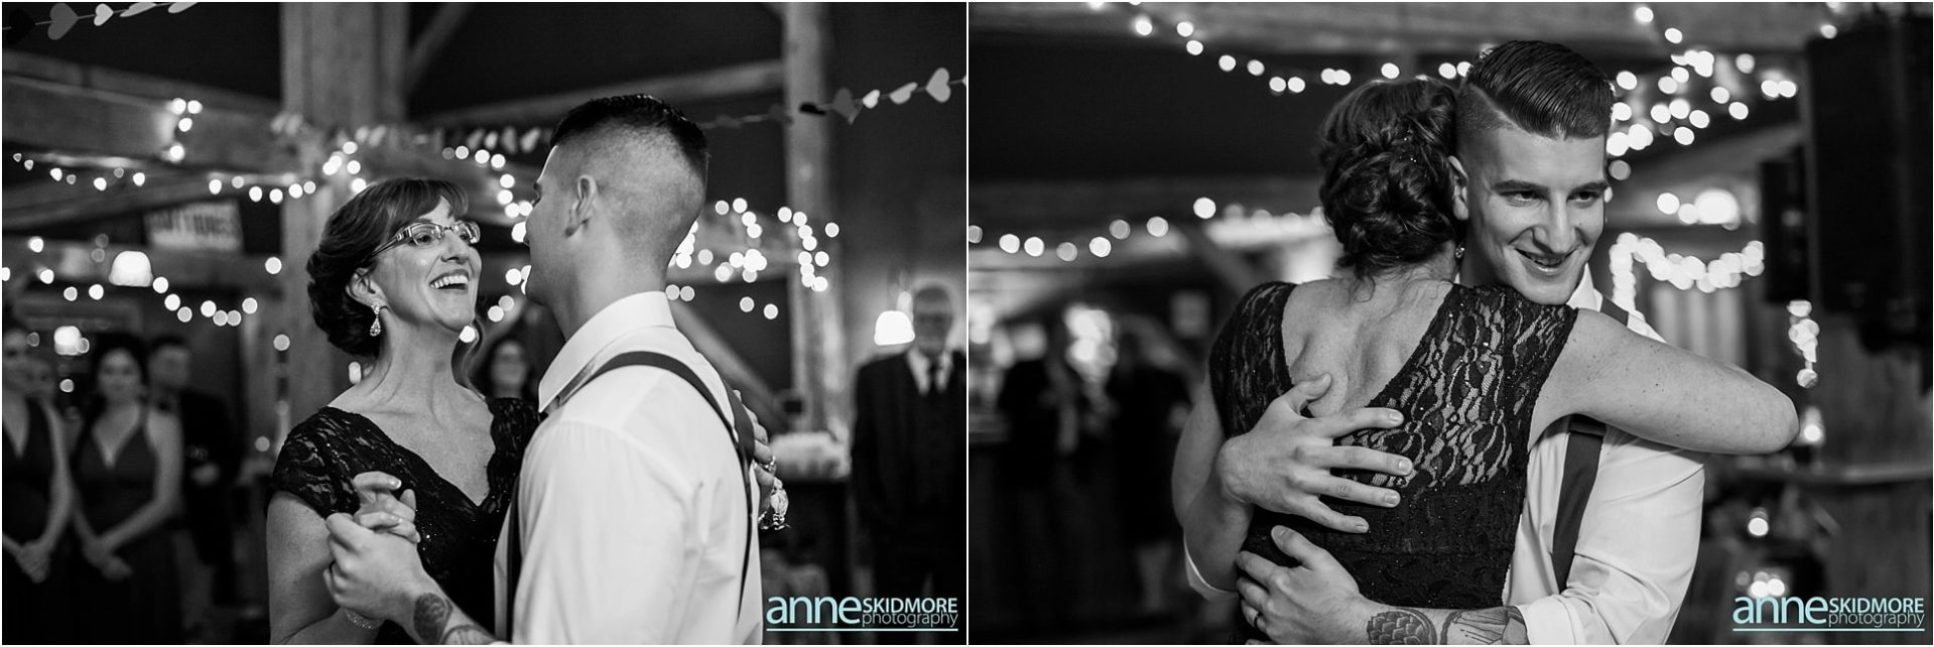 Stone_Mountain_Arts_Center_Wedding__042